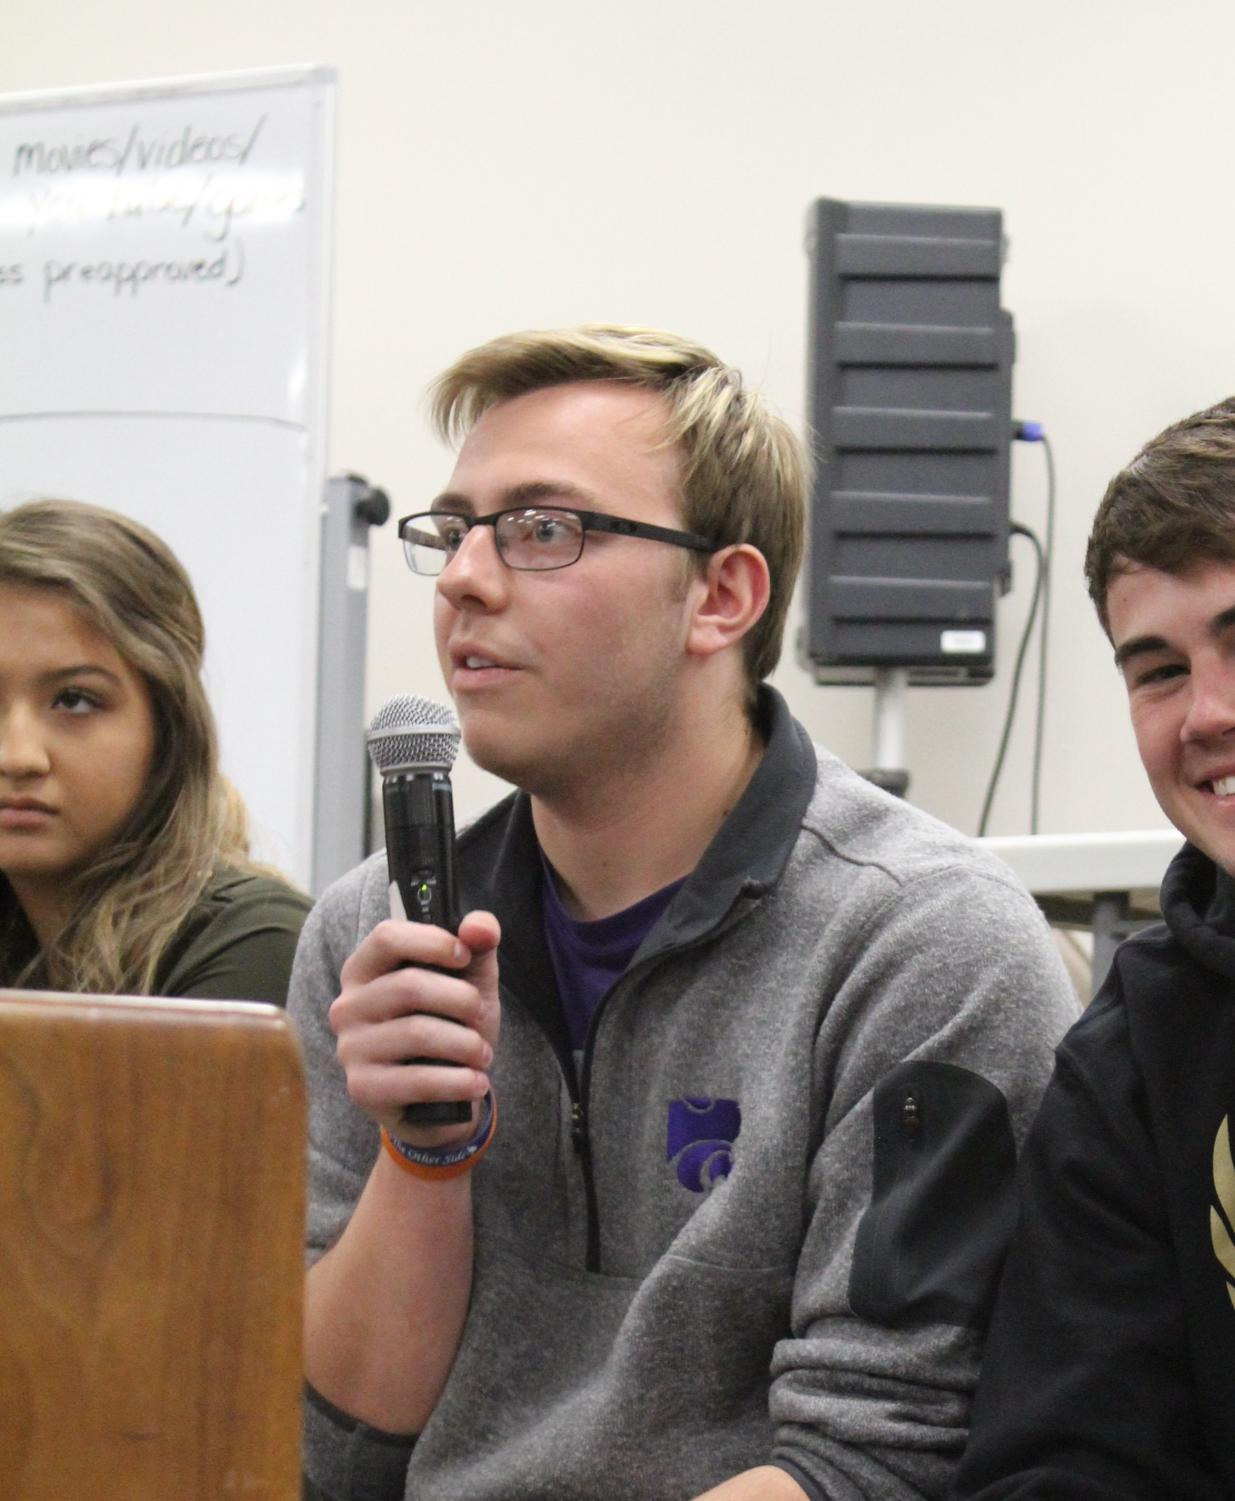 Senior Dusty Schneider kicks off the StuCo meeting which talked about the talent show, SAFE, the garden and the Prom Fashion Show. The talent show will take place on Apr. 27.